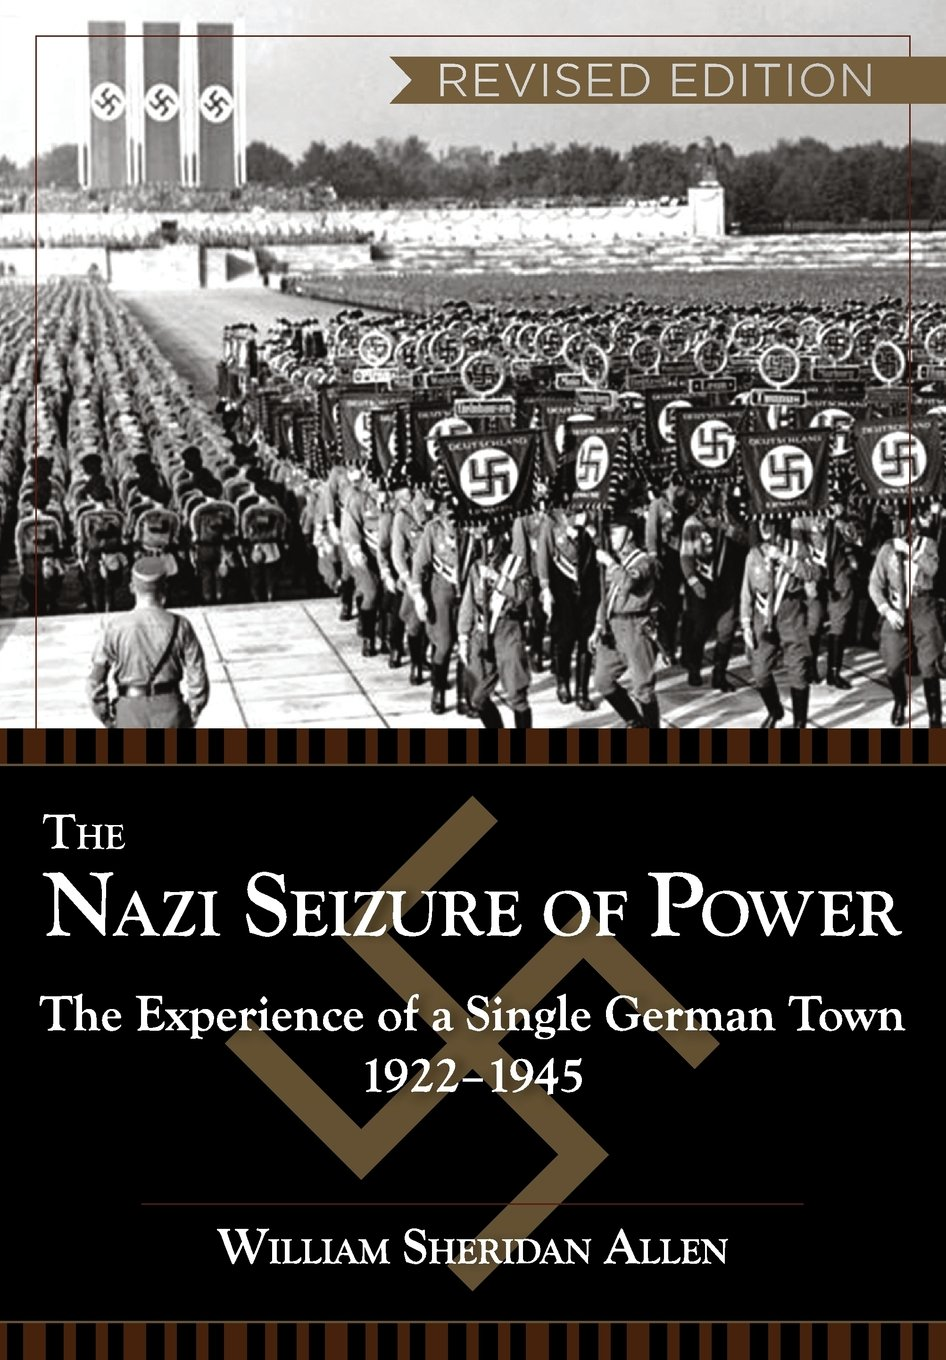 when did the nazis come to power in germany